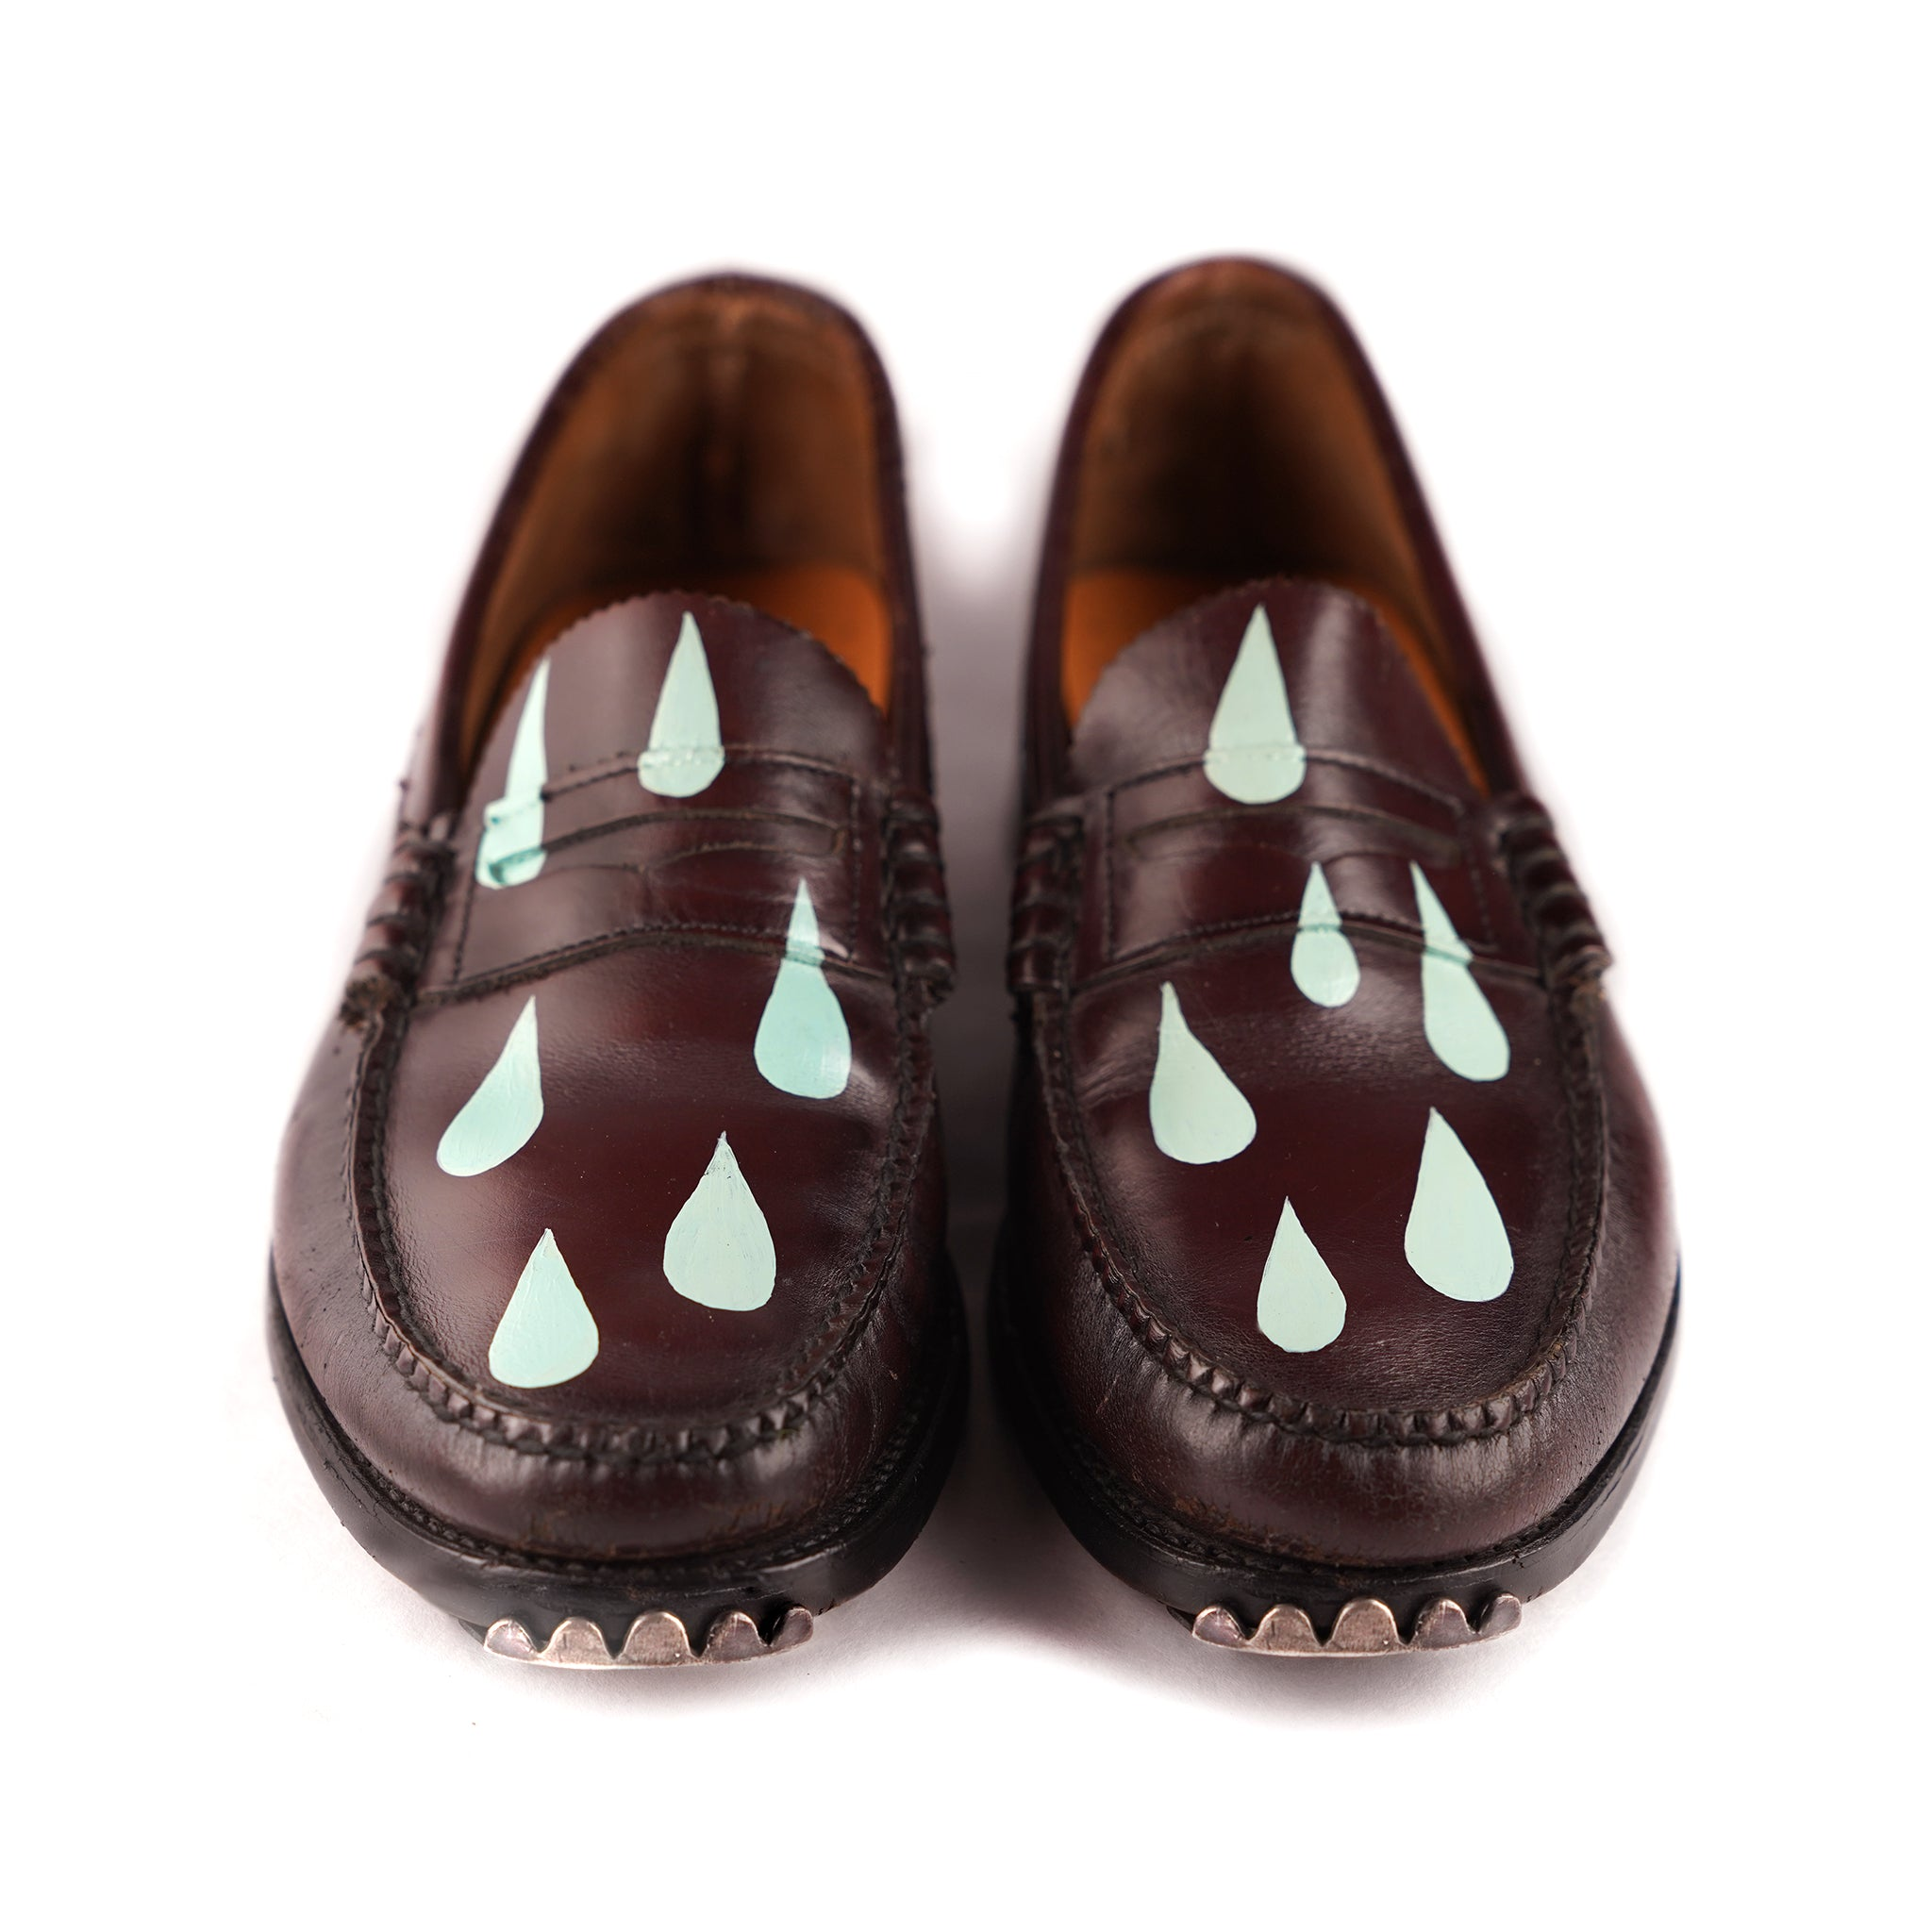 Oxblood+Seafoam Drippy Loafer